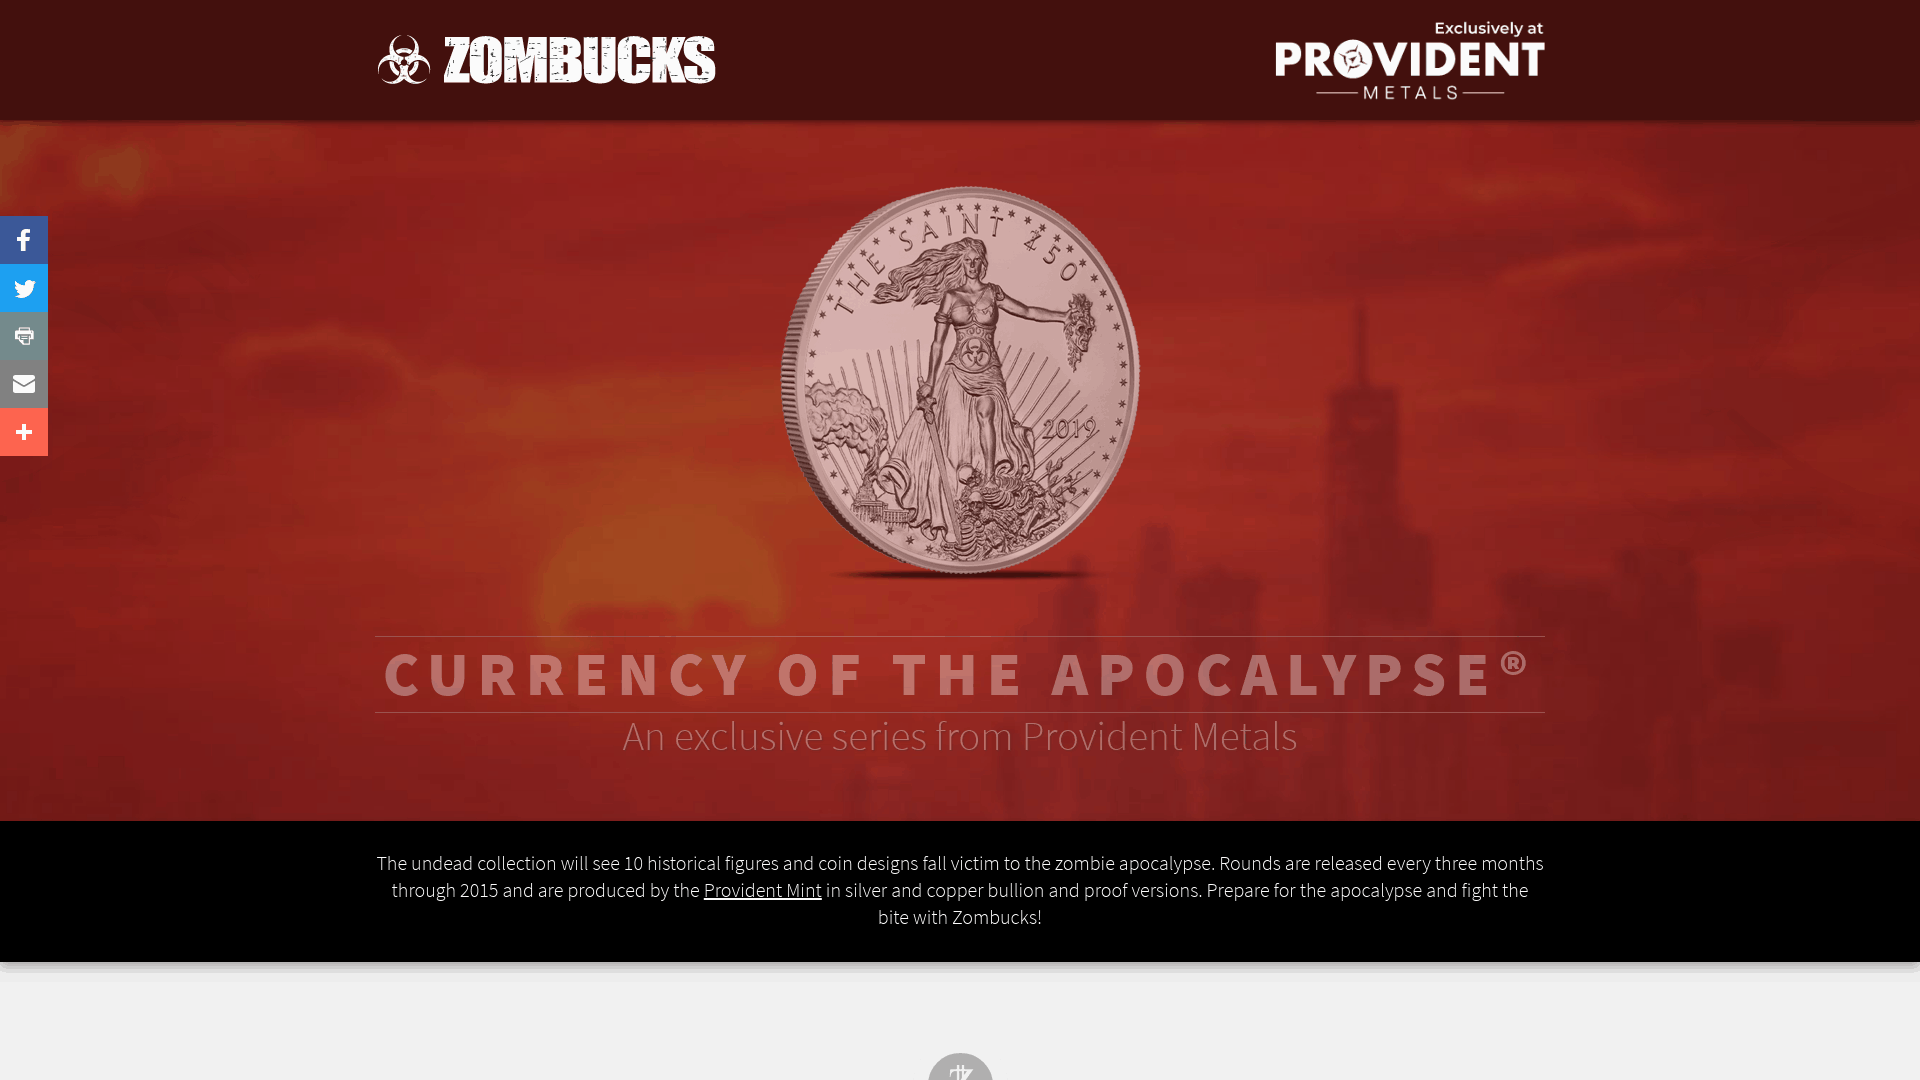 provident metals zombucks